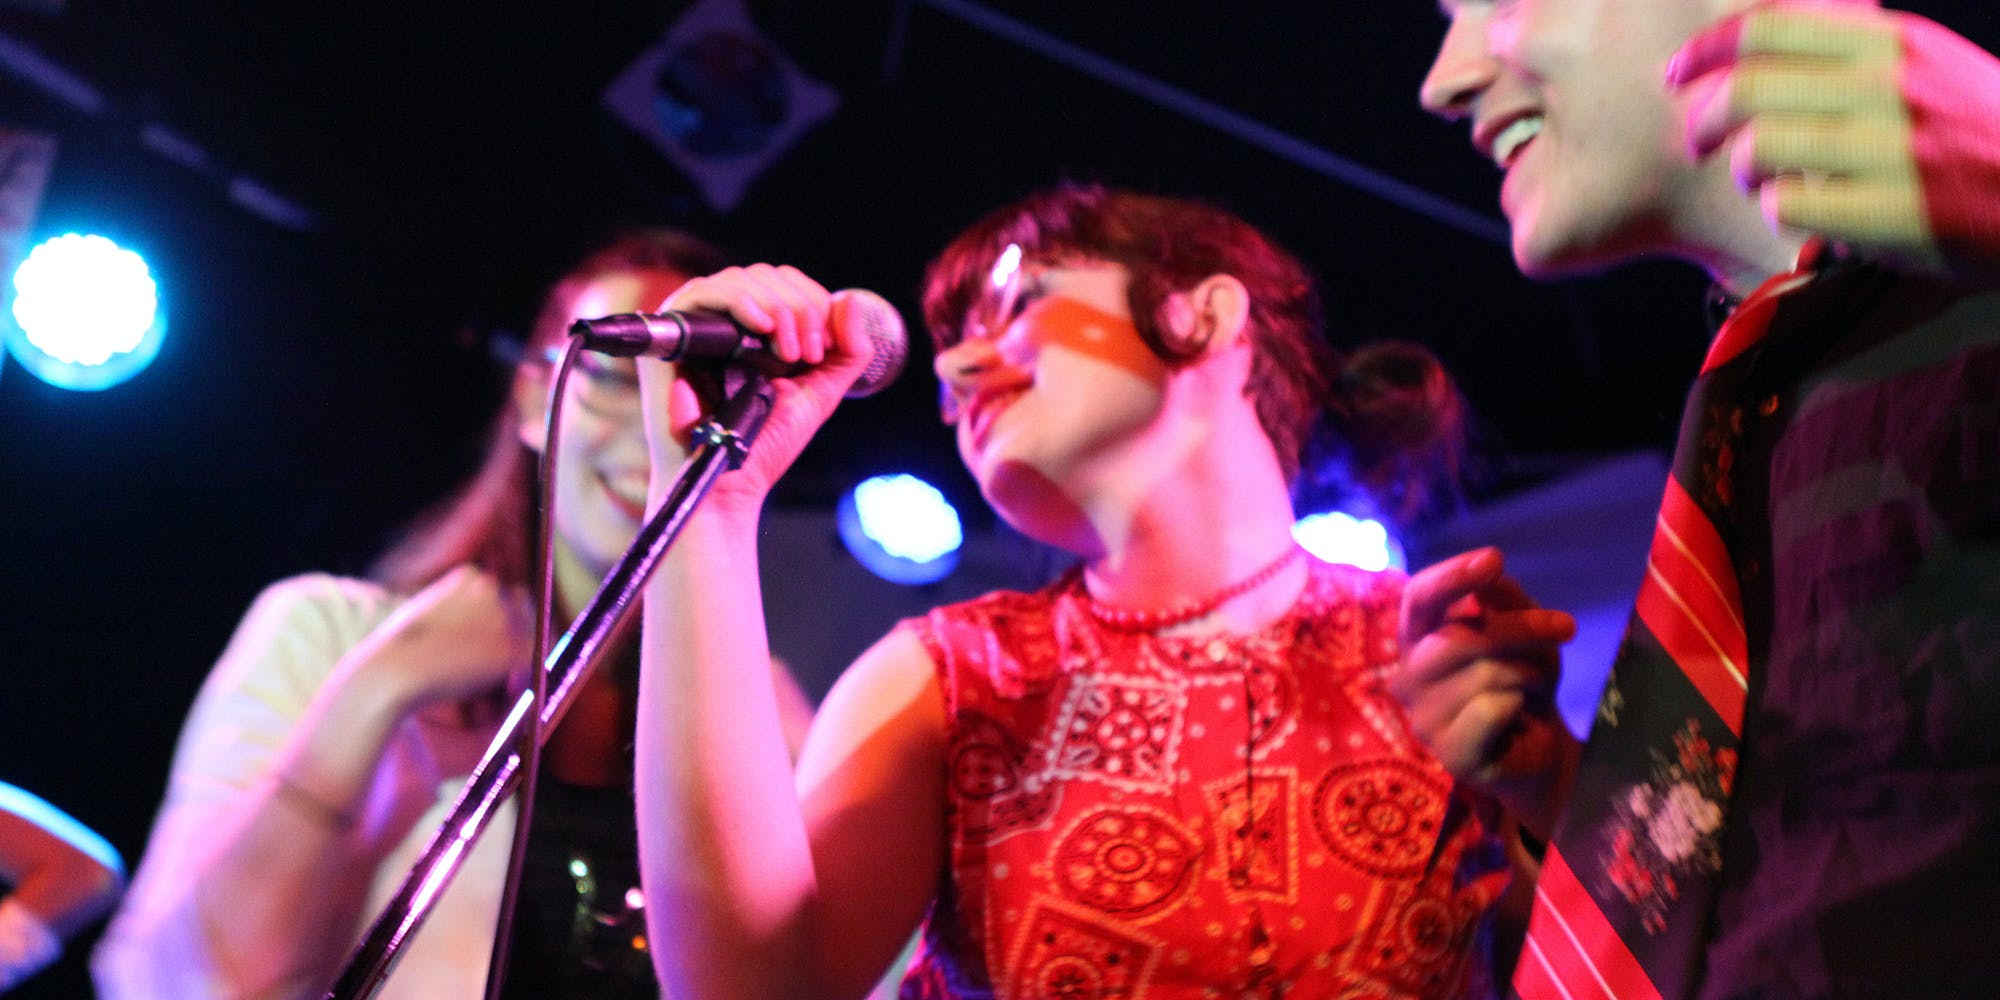 Science: If You Want to Build Relationships, Do Karaoke